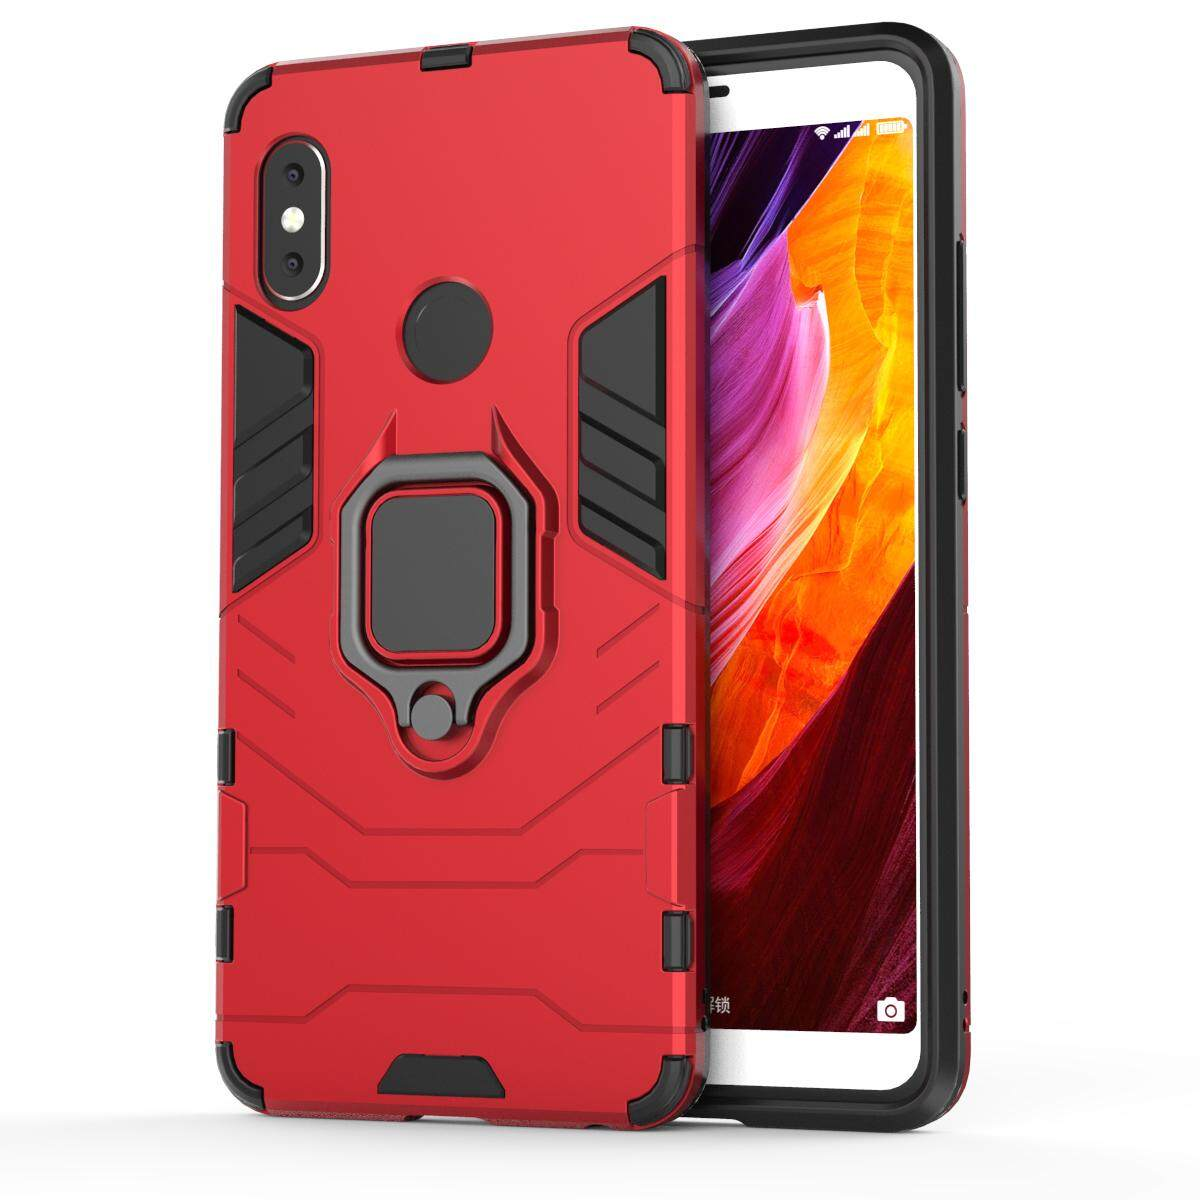 Detail Gambar TPU + PC Hybrid Case with Finger Ring Kickstand for Xiaomi Redmi Note 5 Pro (Dual Camera) / Xiaomi Redmi Note 5 (China) Terbaru